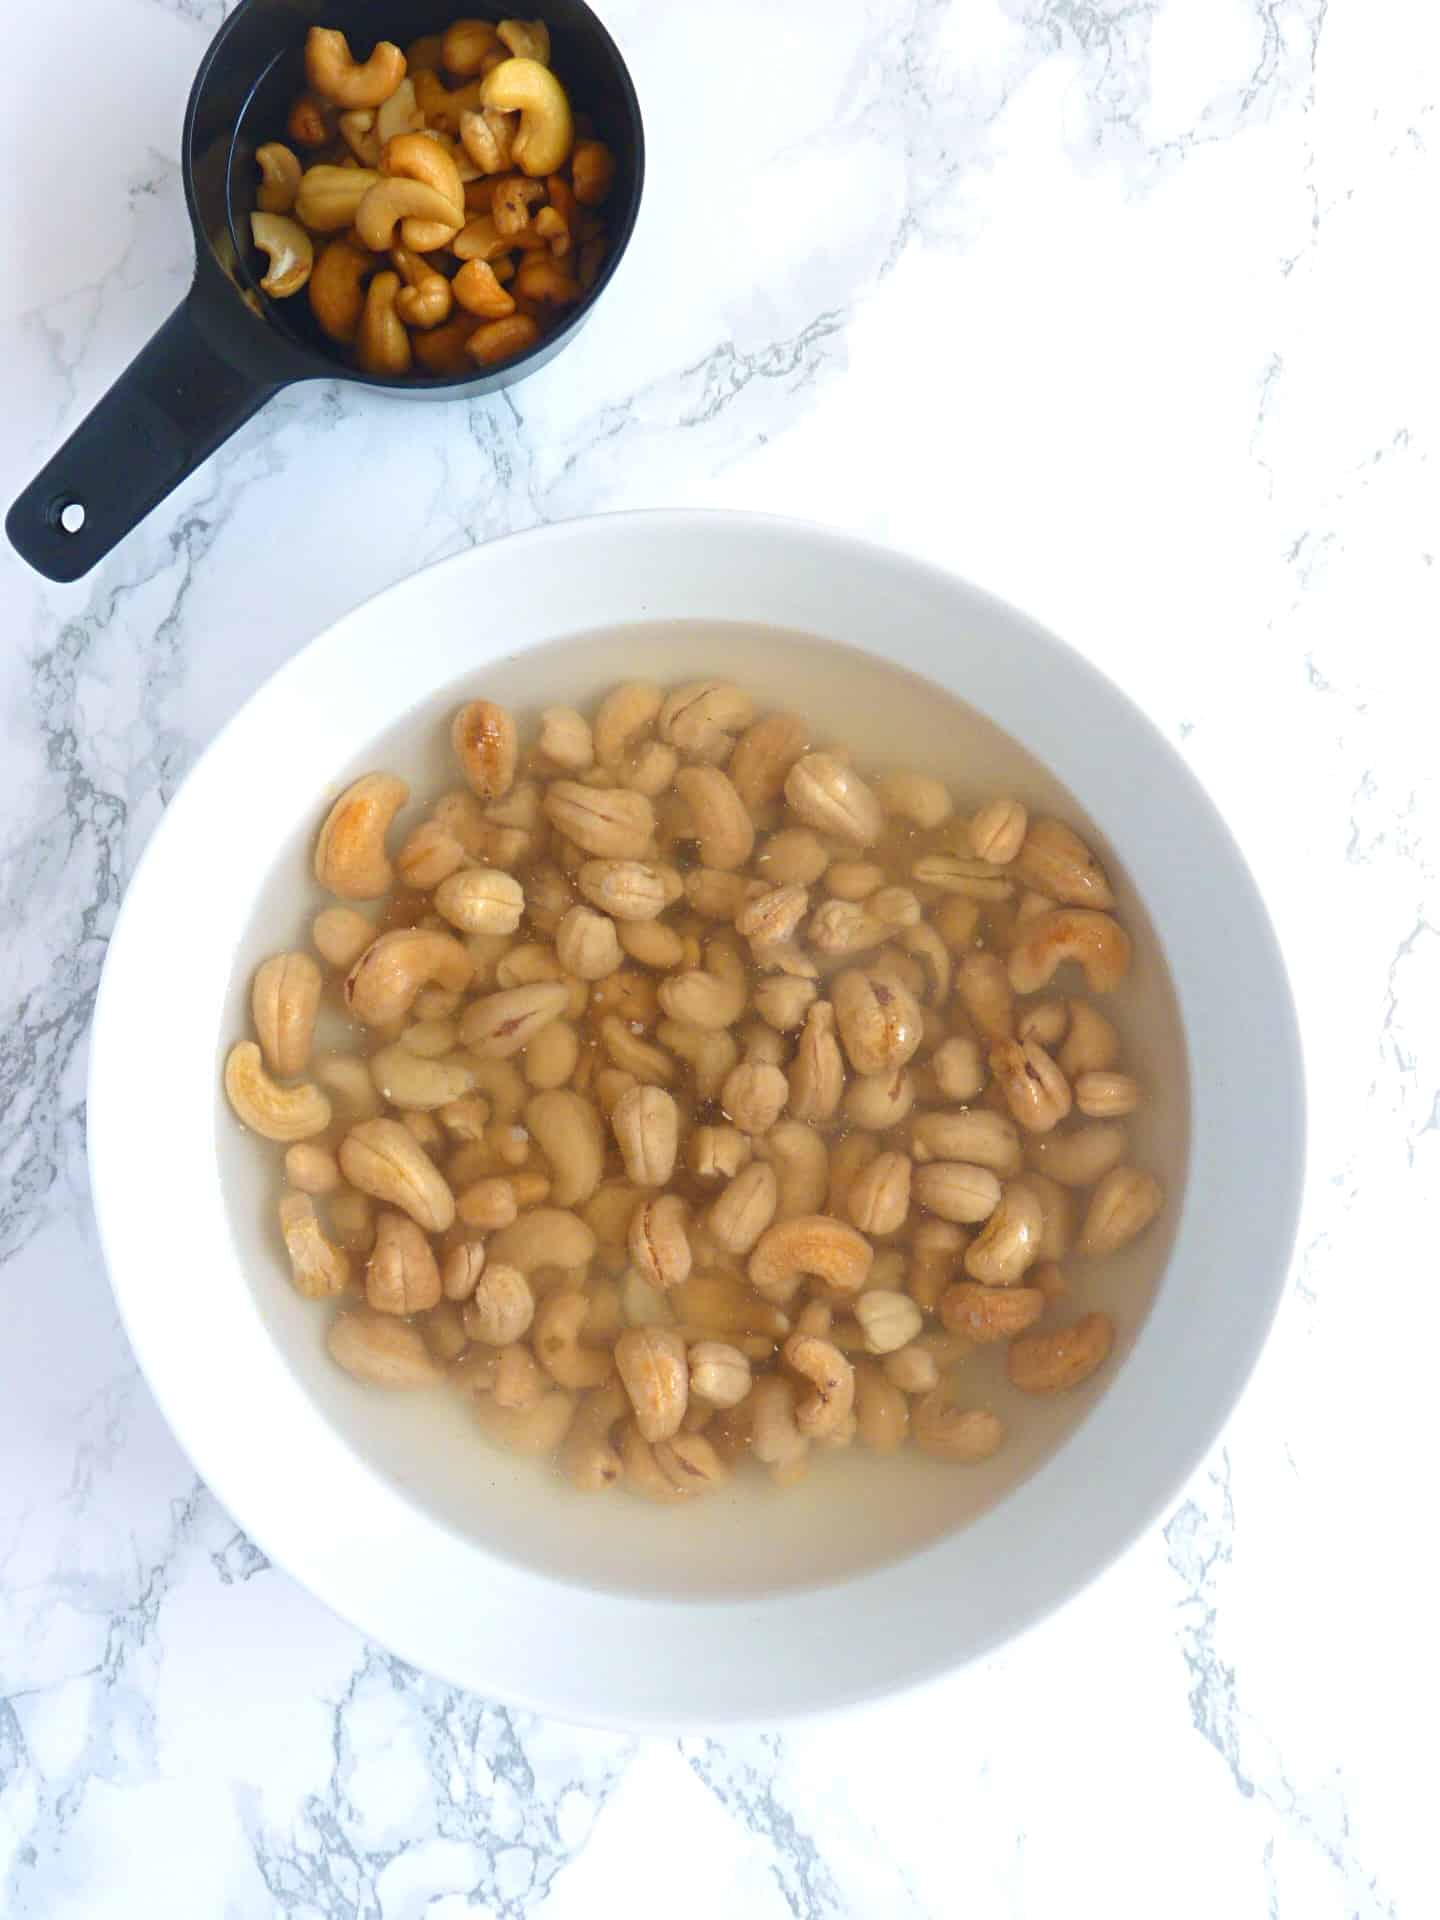 Cashews soaking for egg free mayo